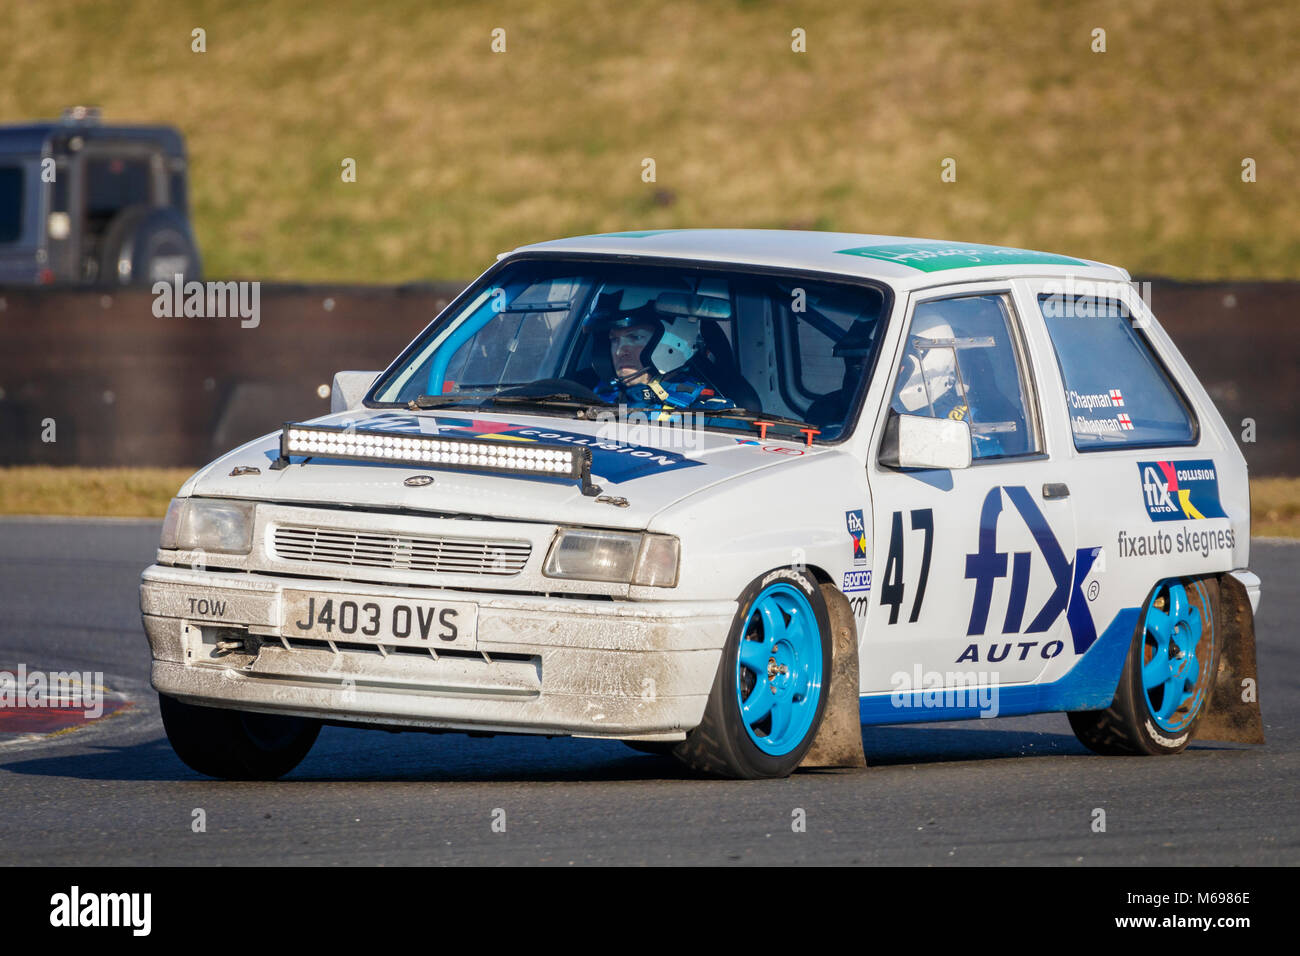 Vauxhall Nova Rally Car Stock Photos & Vauxhall Nova Rally Car Stock ...